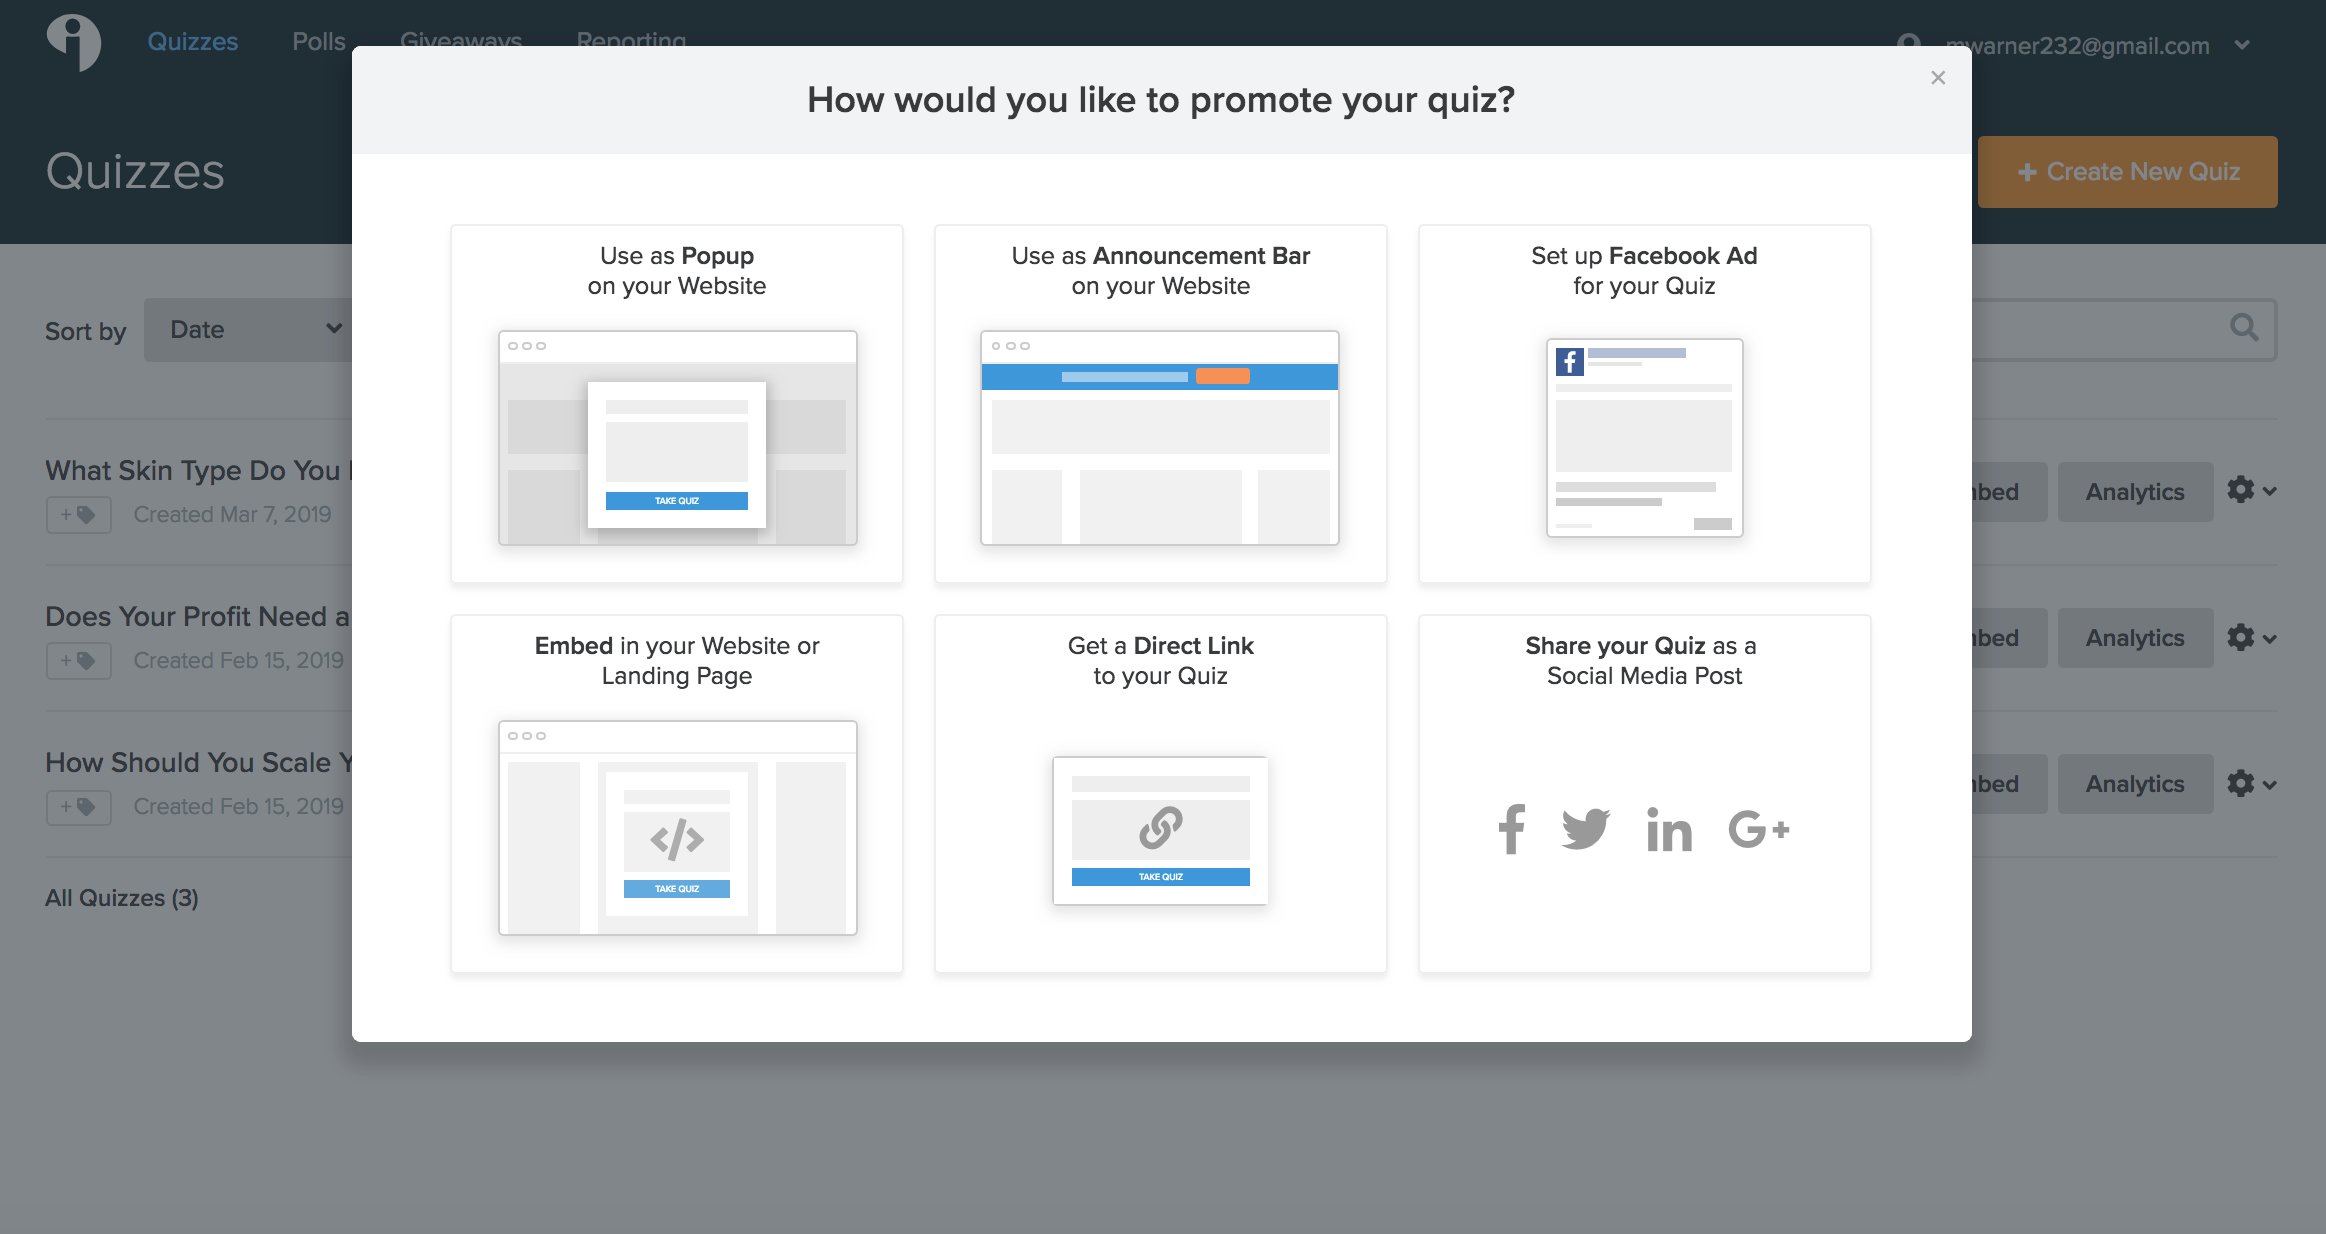 Interact gives you several easy ways to share + promote your quiz.